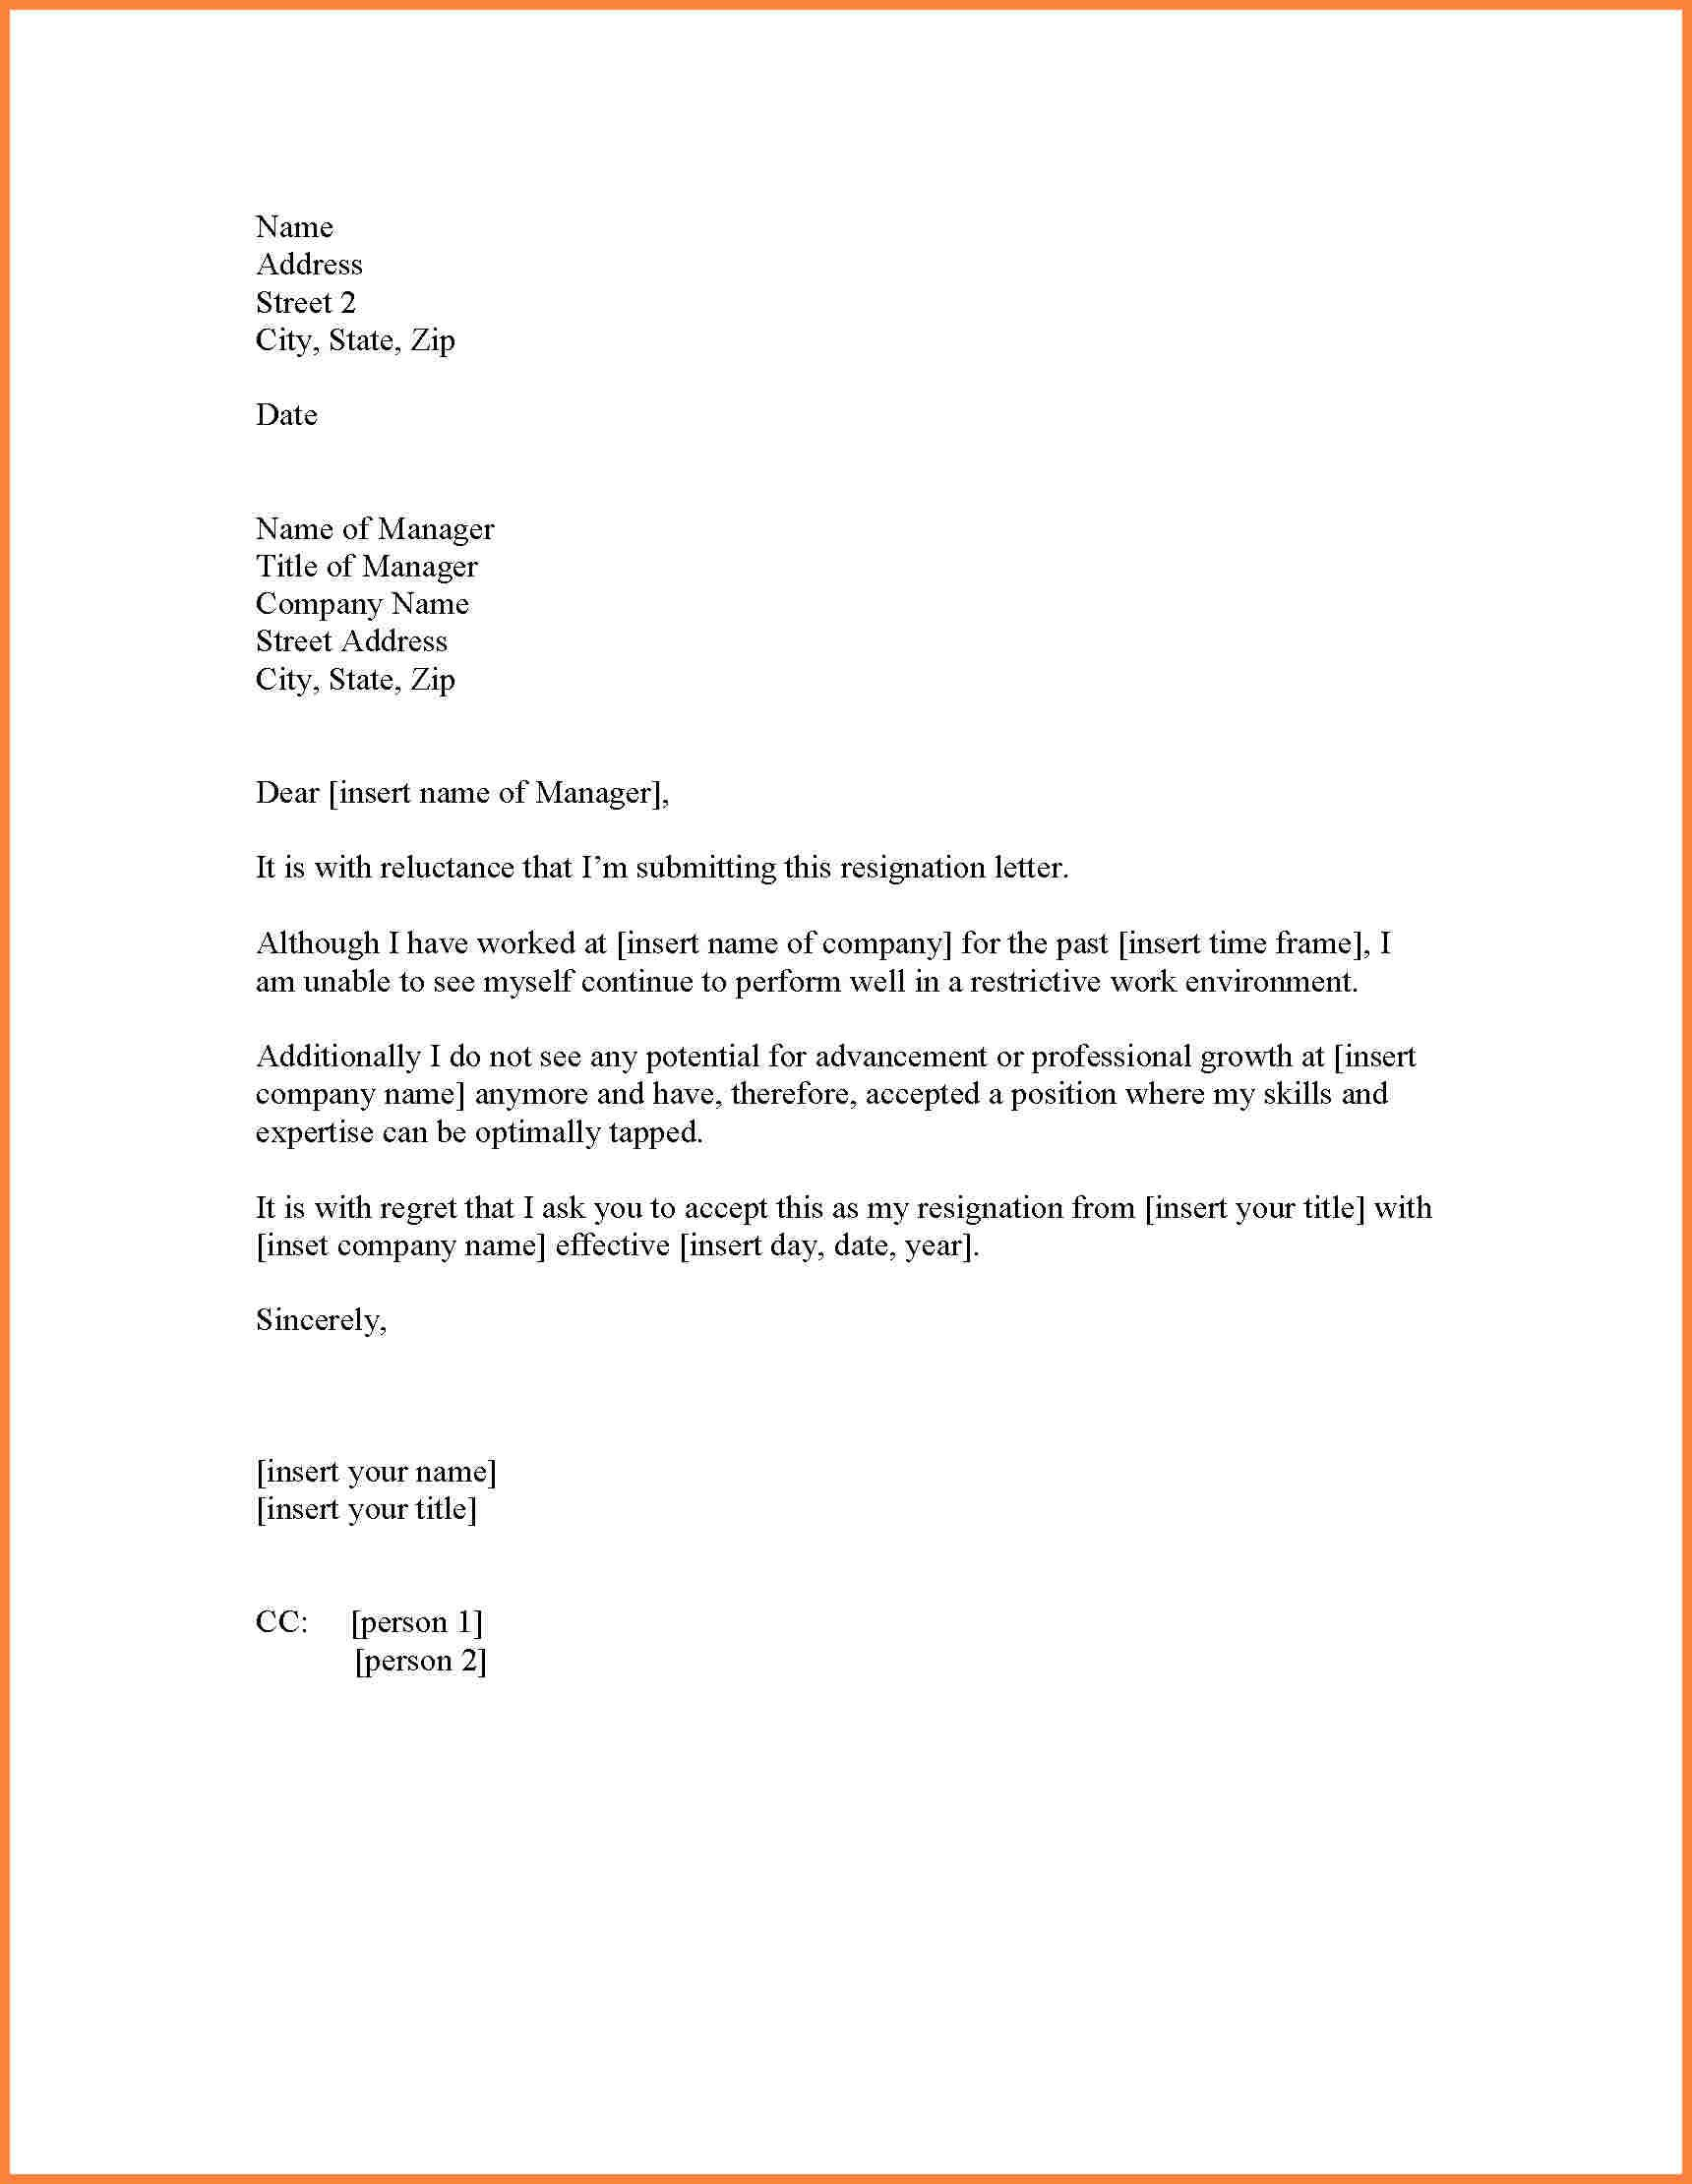 Best resignation letter for personal reasons resignation letter for best resignation letter for personal reasons resignation letter for personal reasons the legal profession depends on clear and exact language cover letter spiritdancerdesigns Images